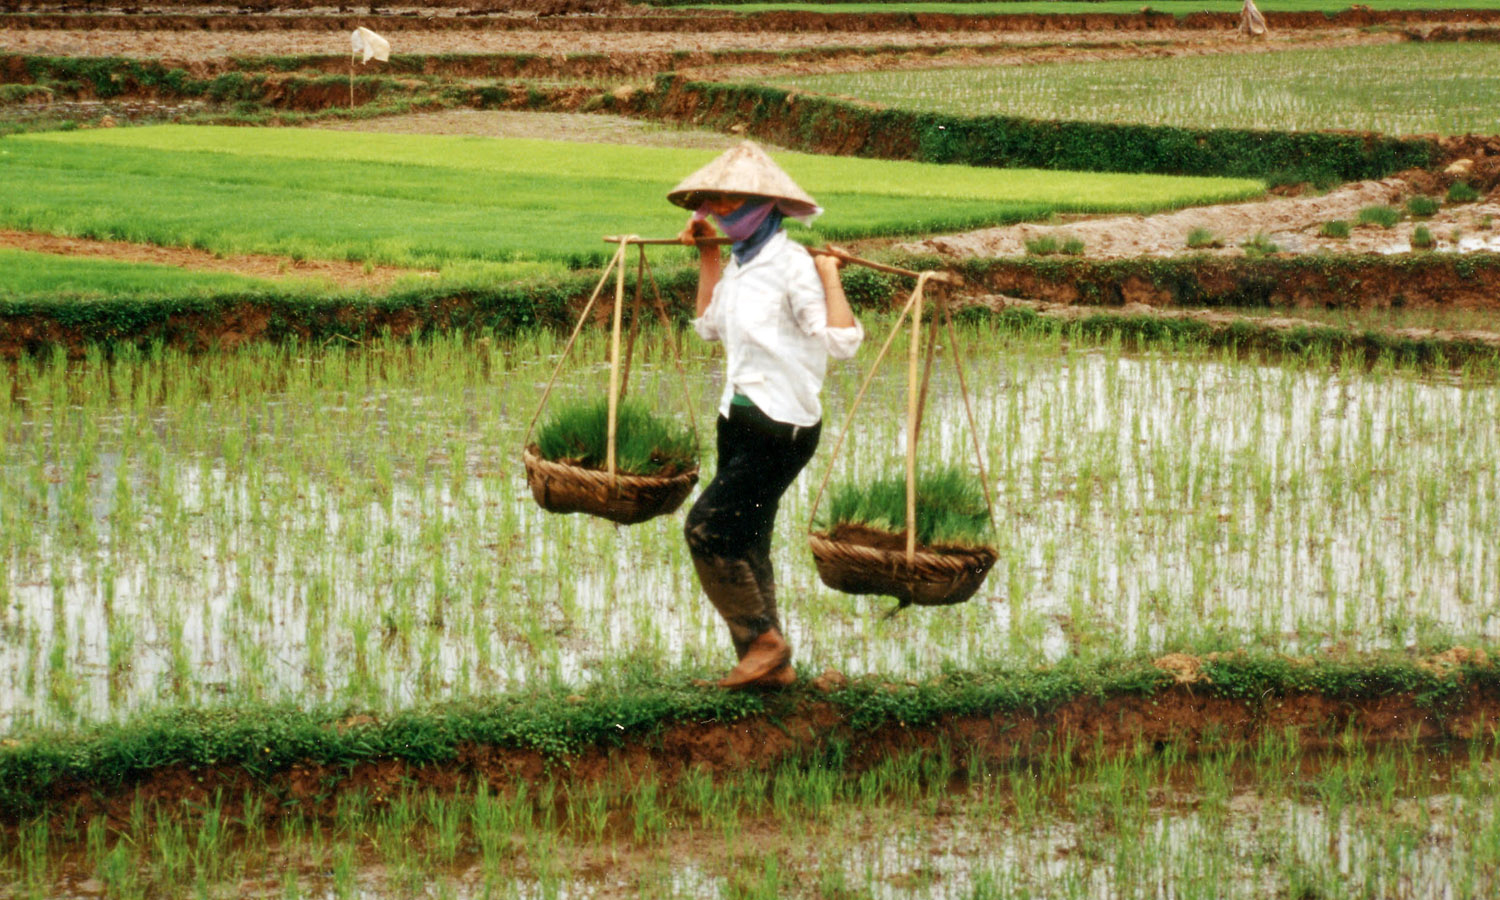 Agricultural research helps farmers in Vietnam grow more rice and counteract the impacts of climate change on food security.